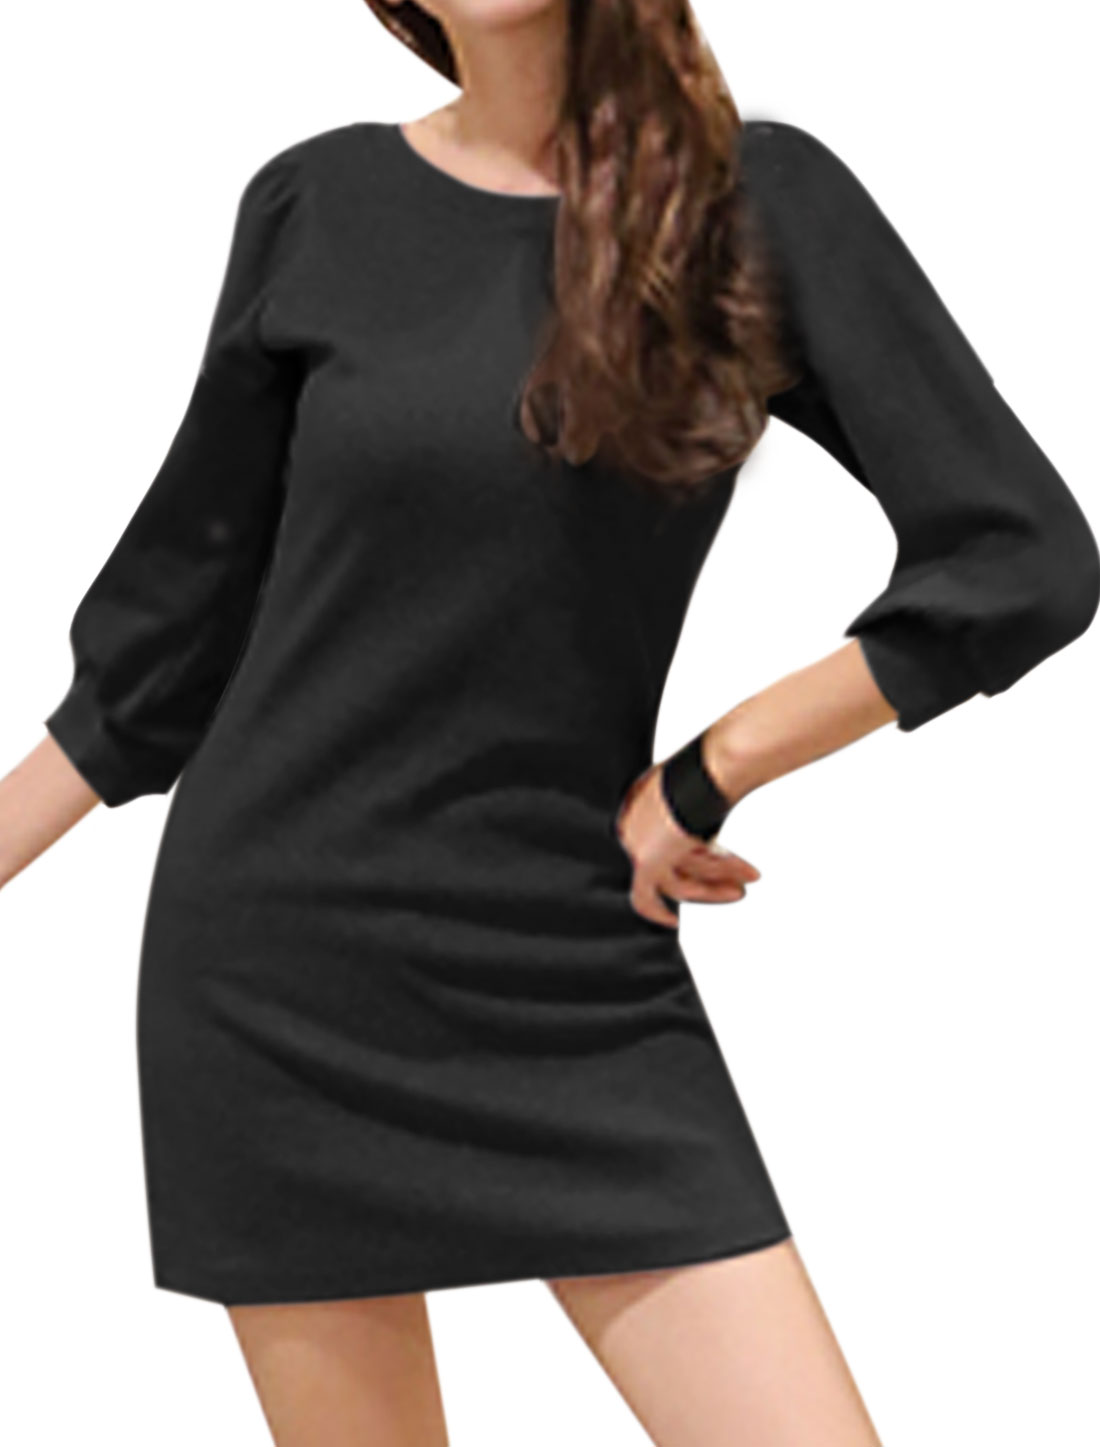 Woman Round Neck 3/4 Sleeves Slim Fit Tunic Dress Black XS